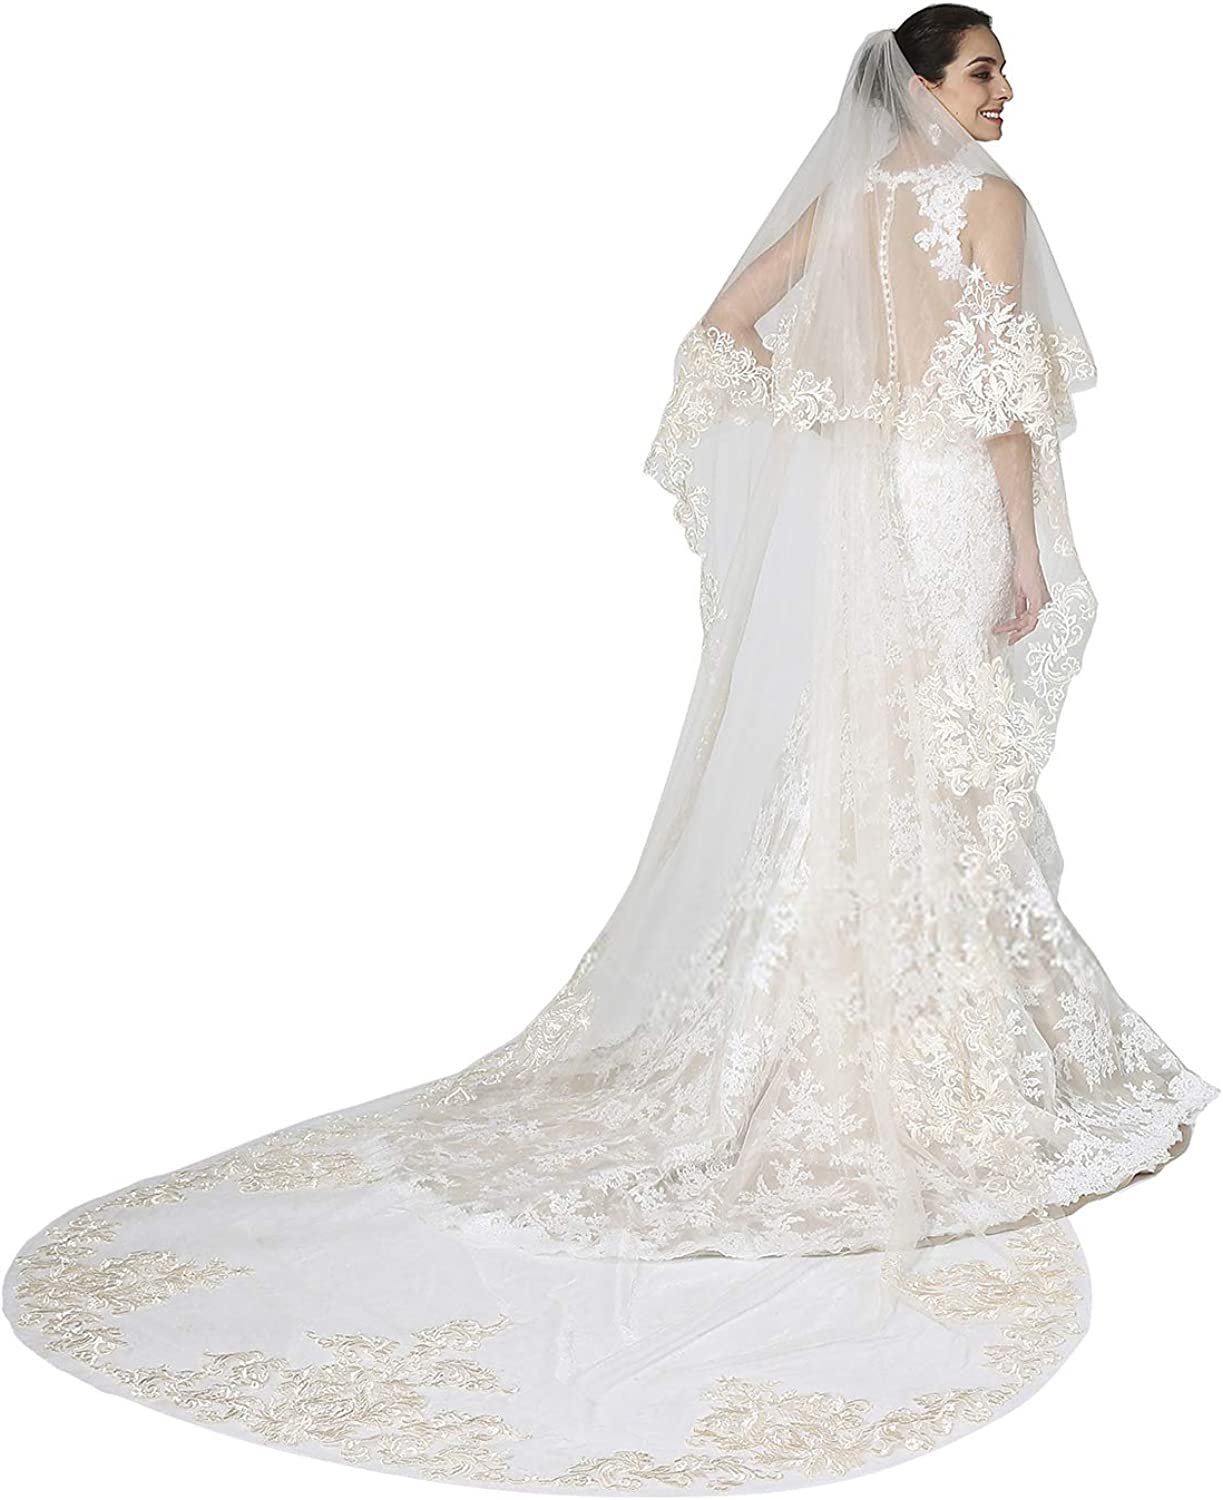 EllieHouse Women's Lace Chapel Wedding Bridal Veil With Free Comb E01